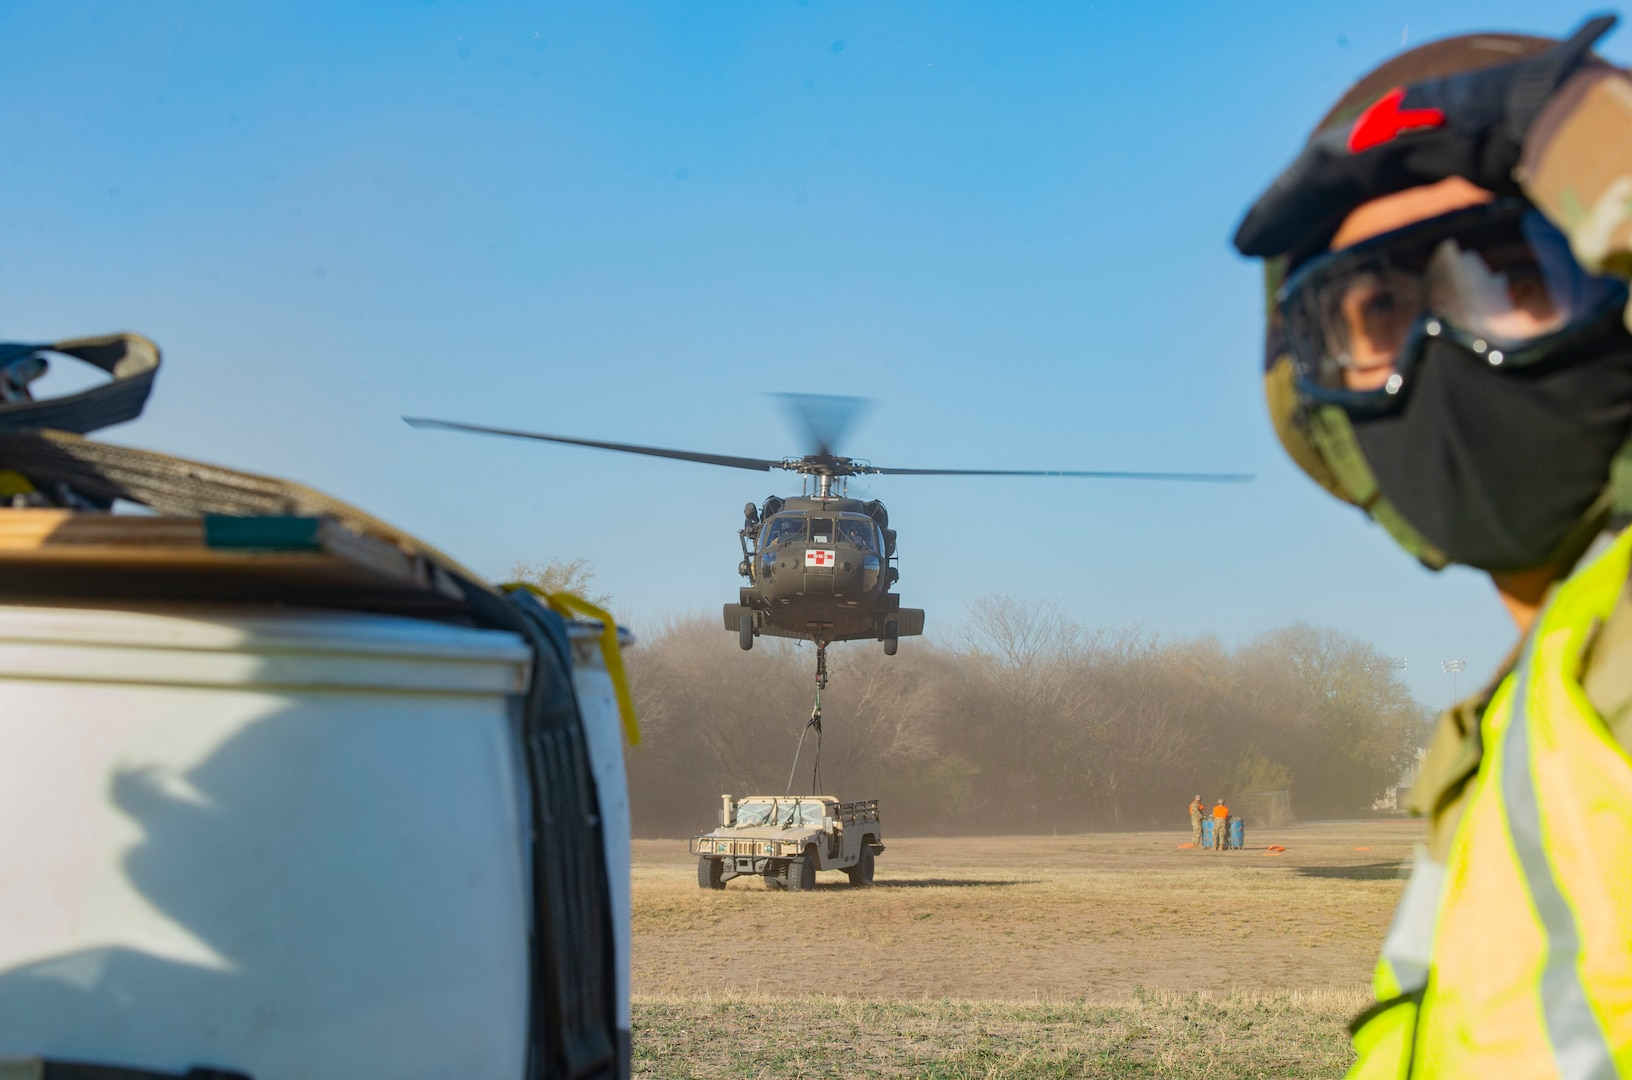 A U.S. Army UH-60L Black Hawk from Company C, 2nd Battalion, 149th Aviation Regiment prepares to pick up a Humvee sling load, Dec. 15, 2020, at Joint Base San Antonio-Chapman Annex, Texas.